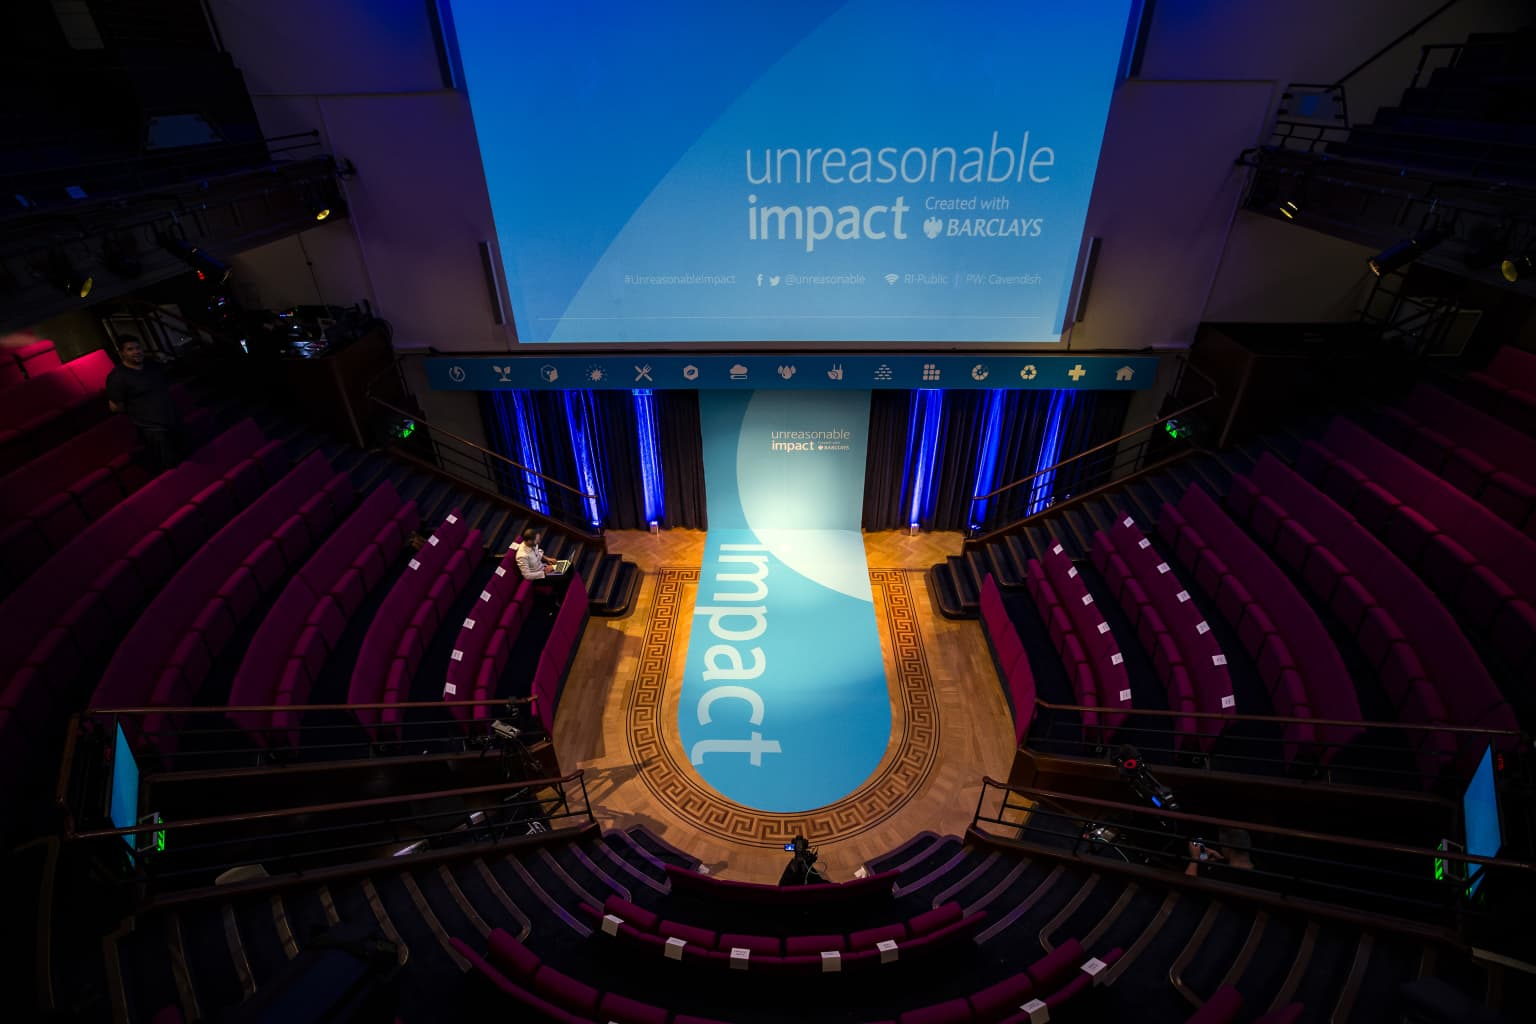 Unreasonable Impact World Forum